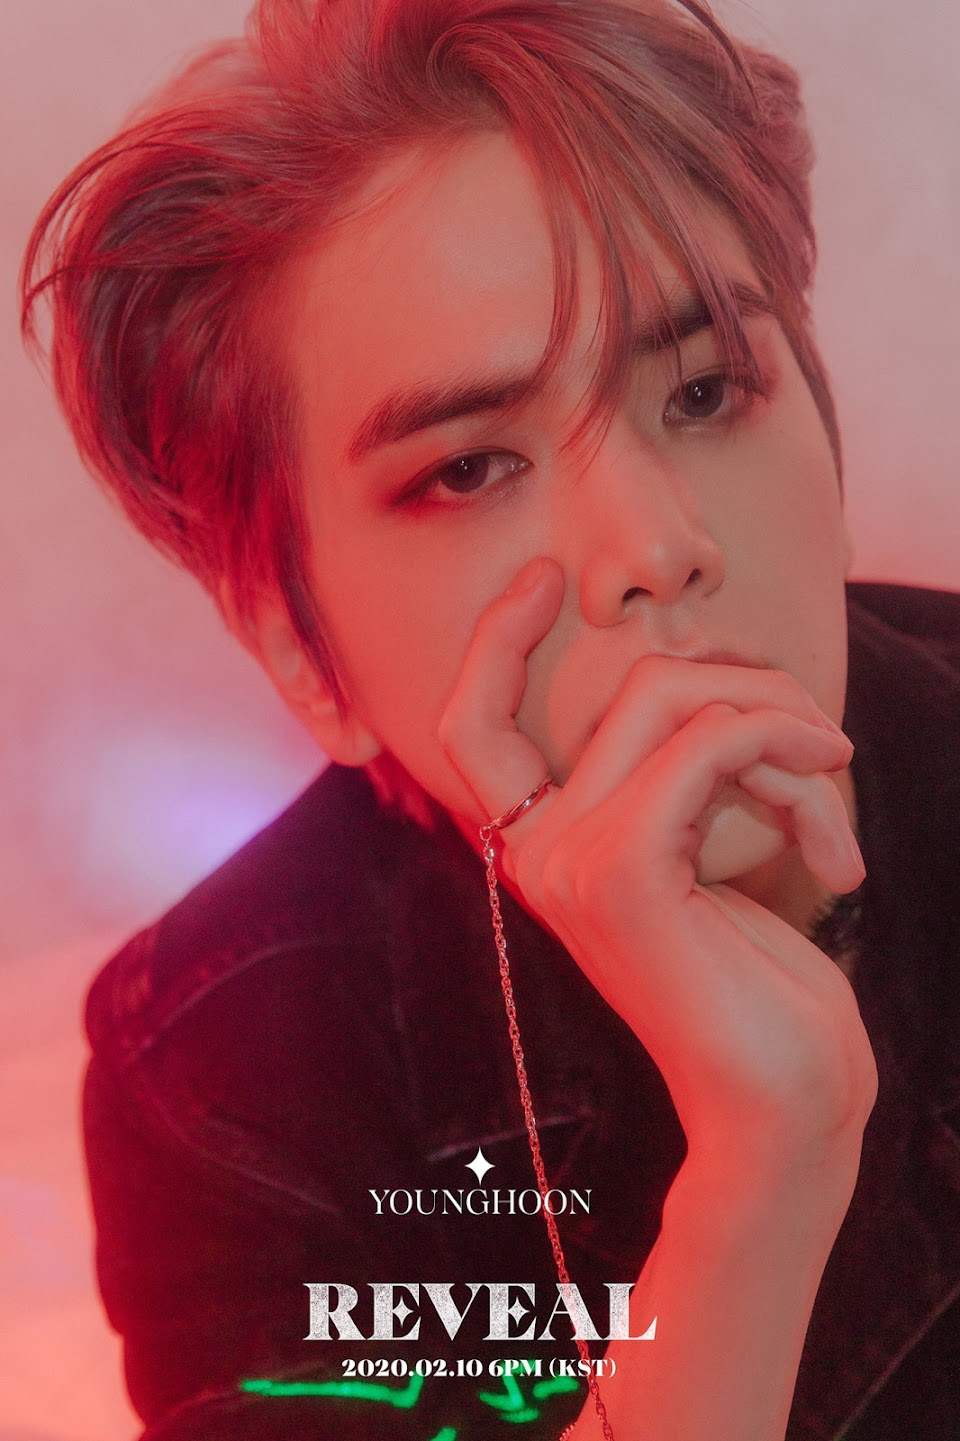 Younghoon_(Reveal)_1